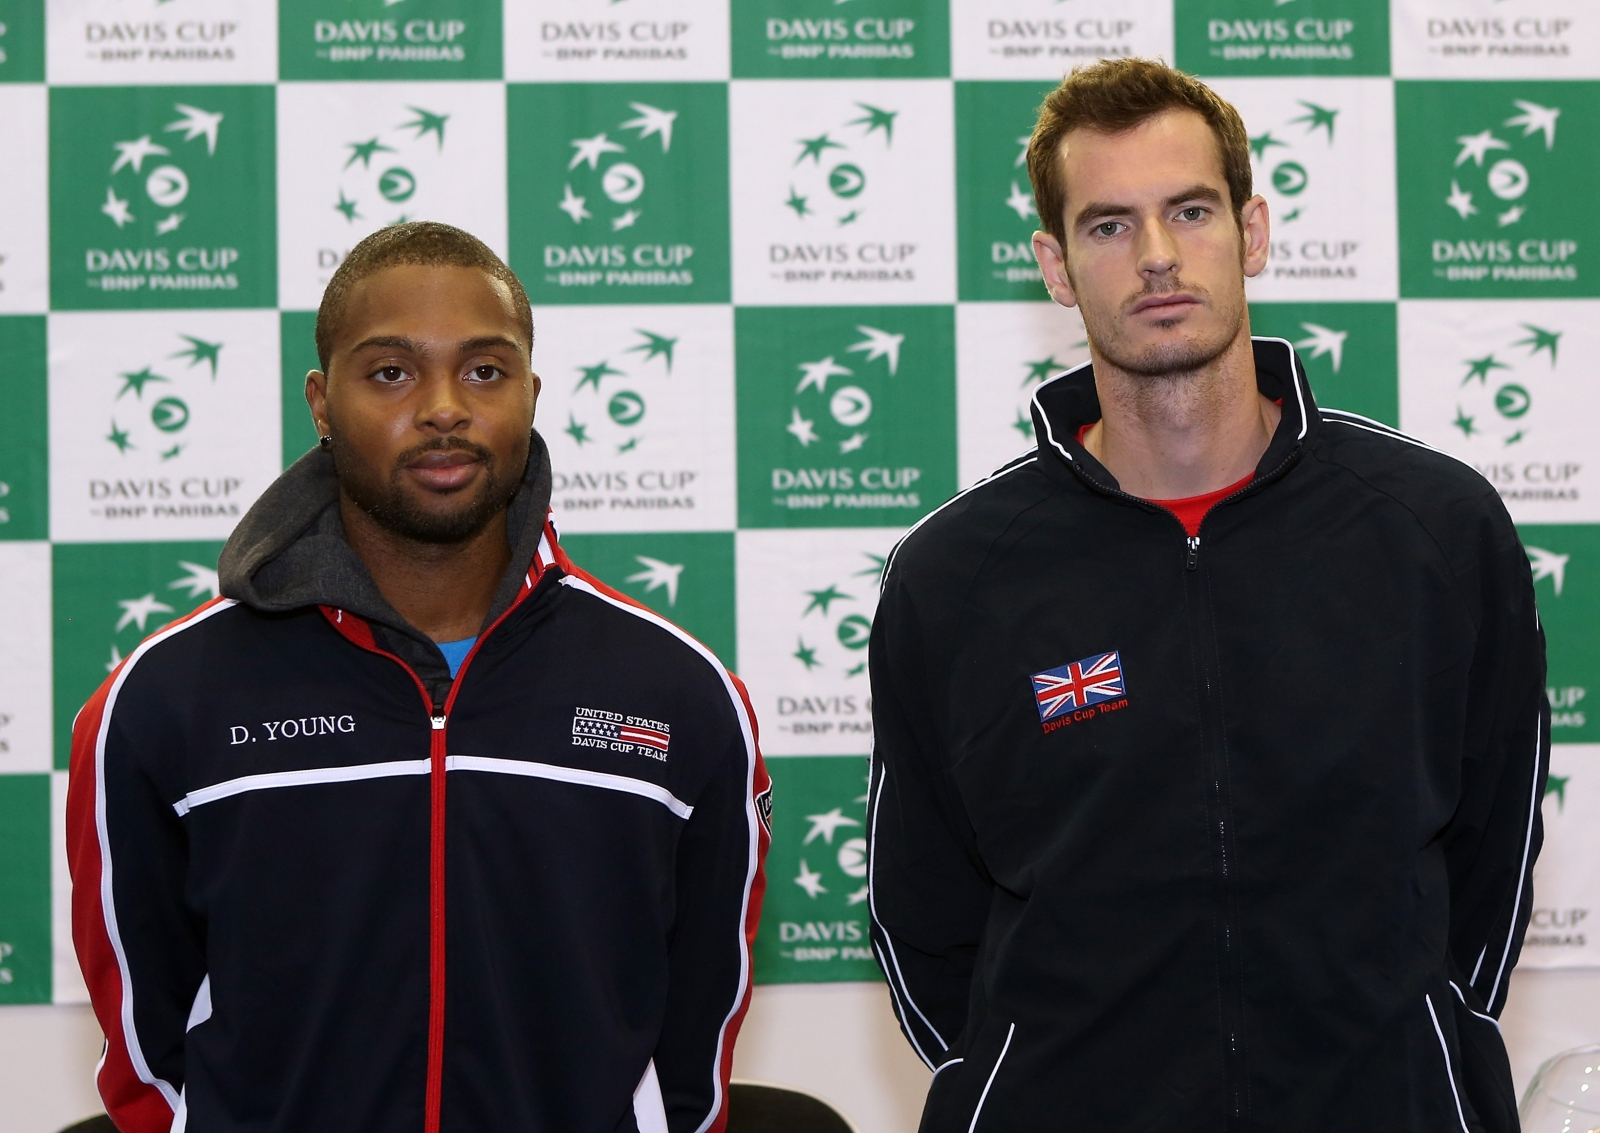 Andy Murray v Donald Young